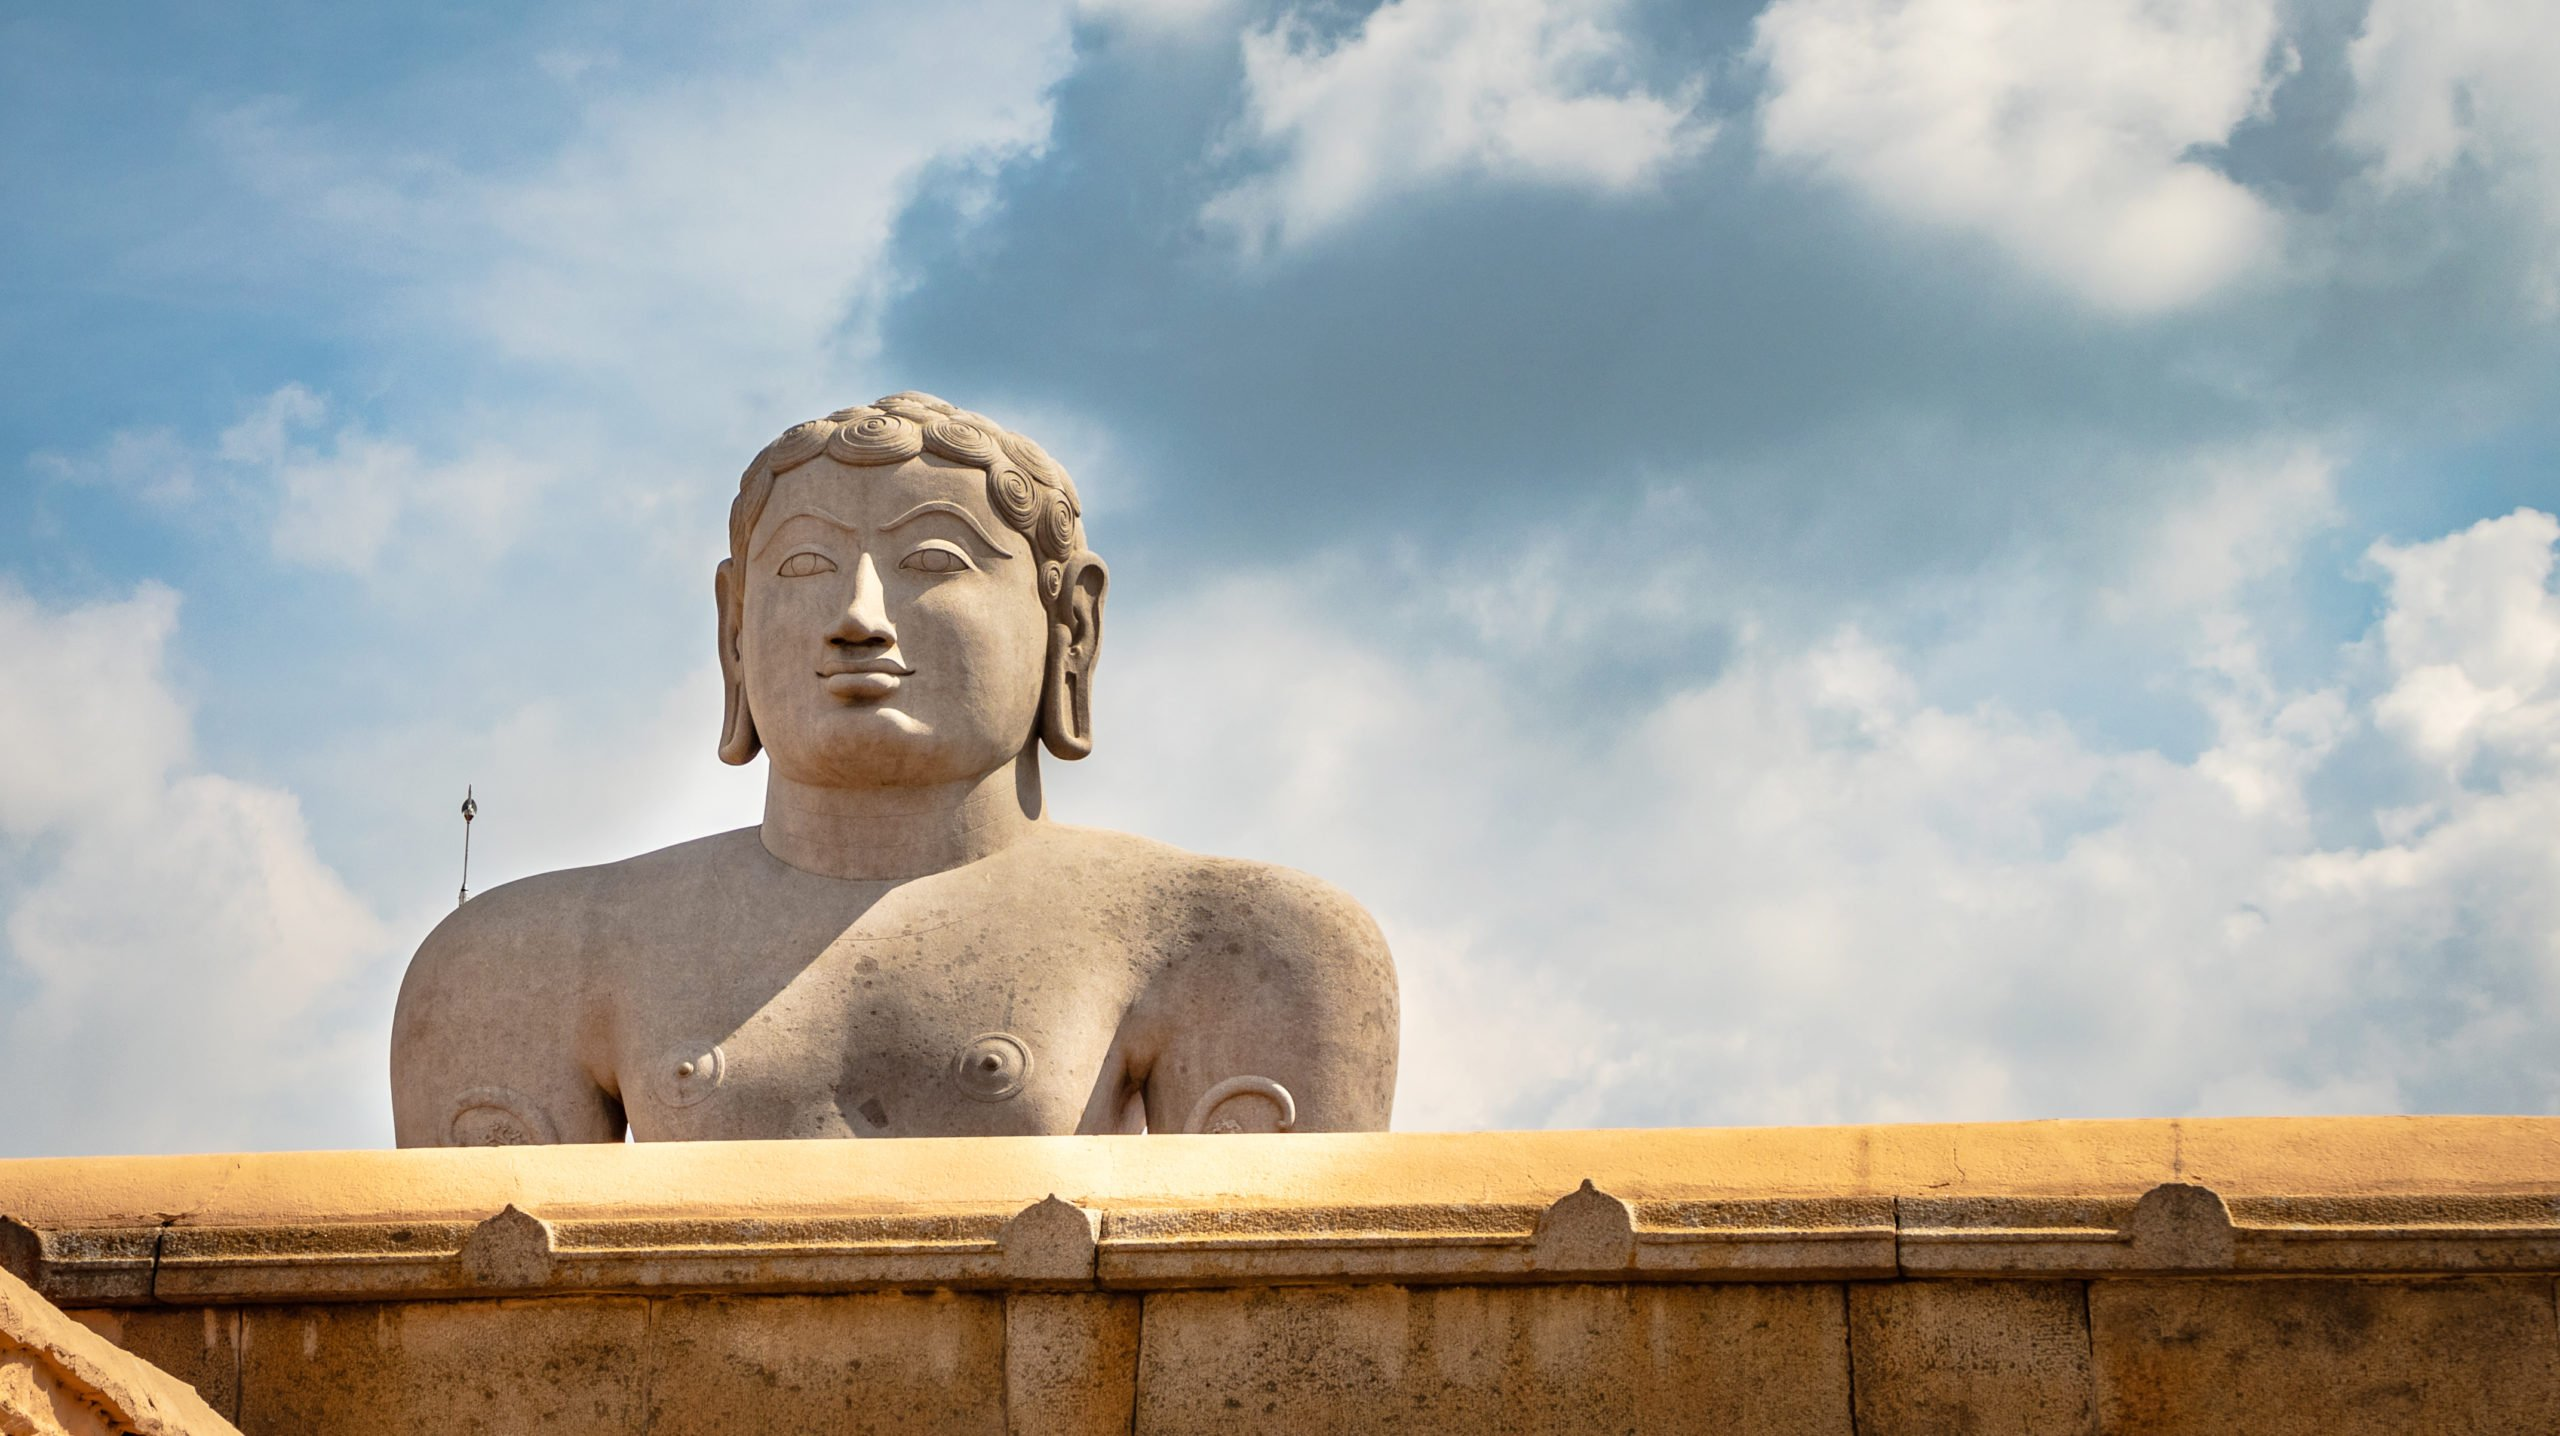 Join Us To A Scenic Climb Up Of 600 Steps To Reach The Statue Perched Up A Hill In Our Tour To The World's Tallest Monolithic Statue At Shravanabelagola